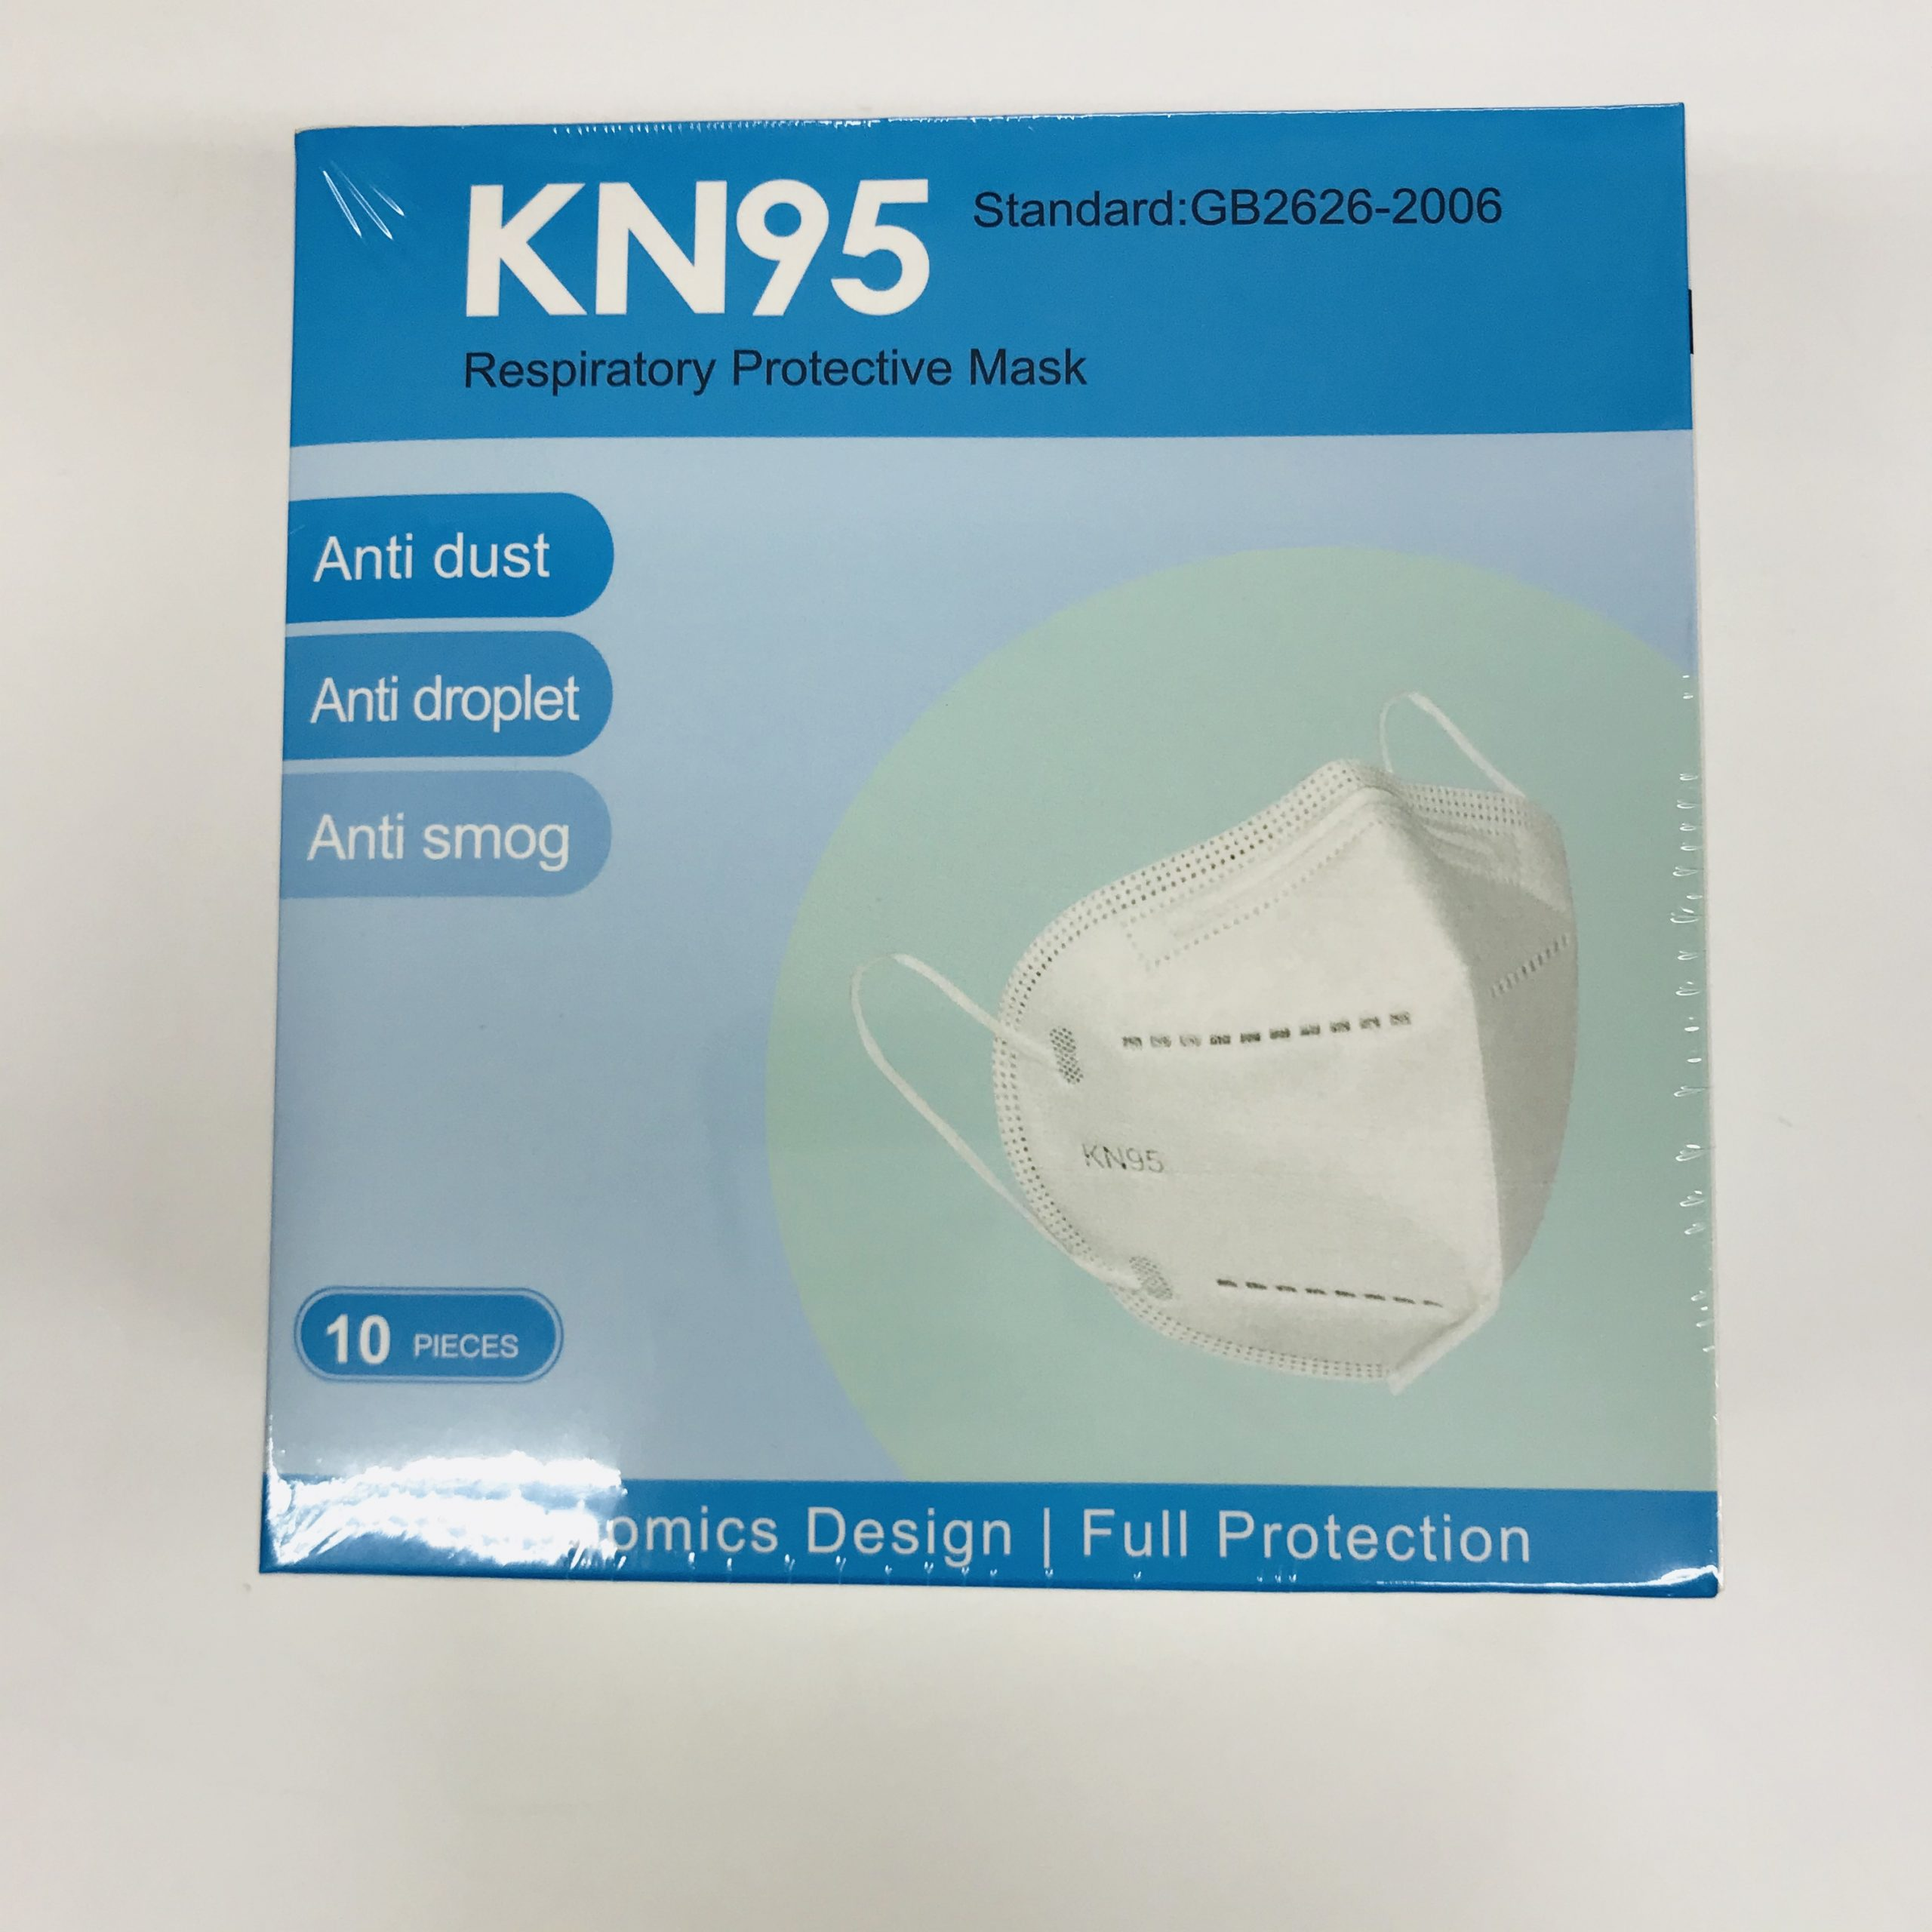 KN95 Mask 10 Pieces / Box